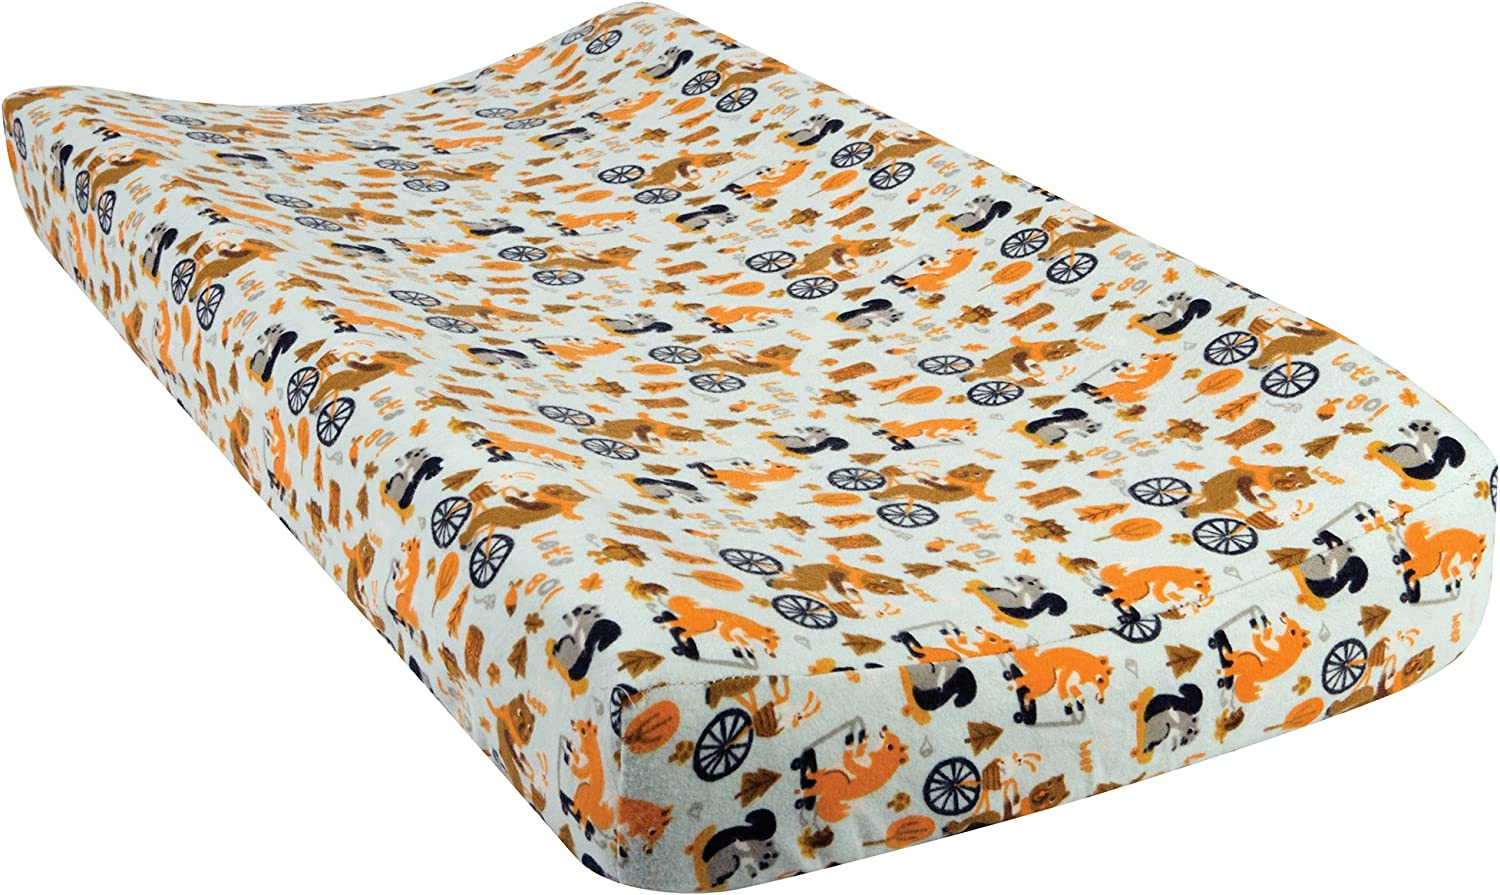 Trend Lab Lets Go Deluxe Flannel Changing Pad Cover